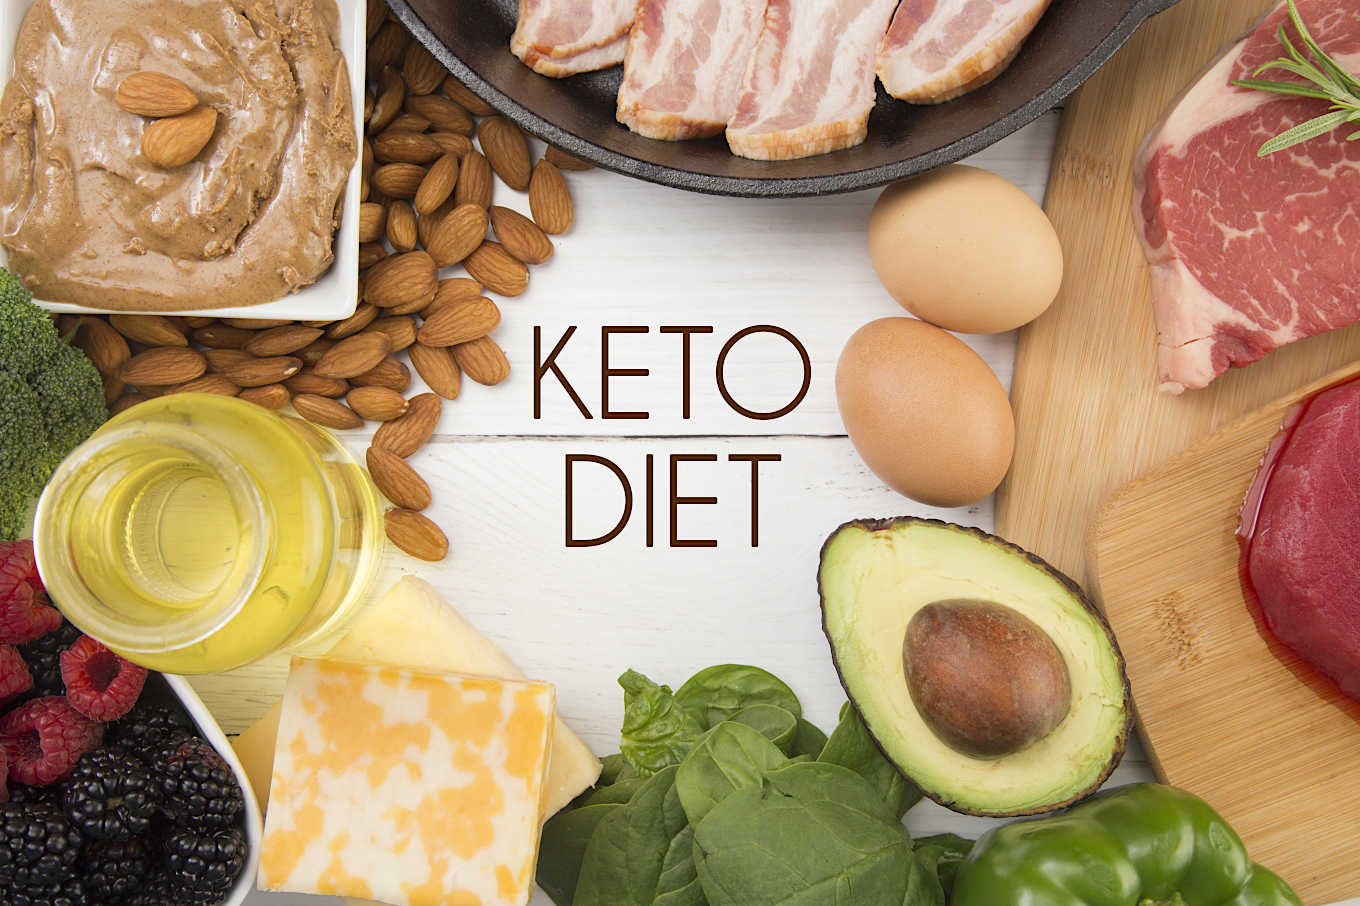 Keto diet facts